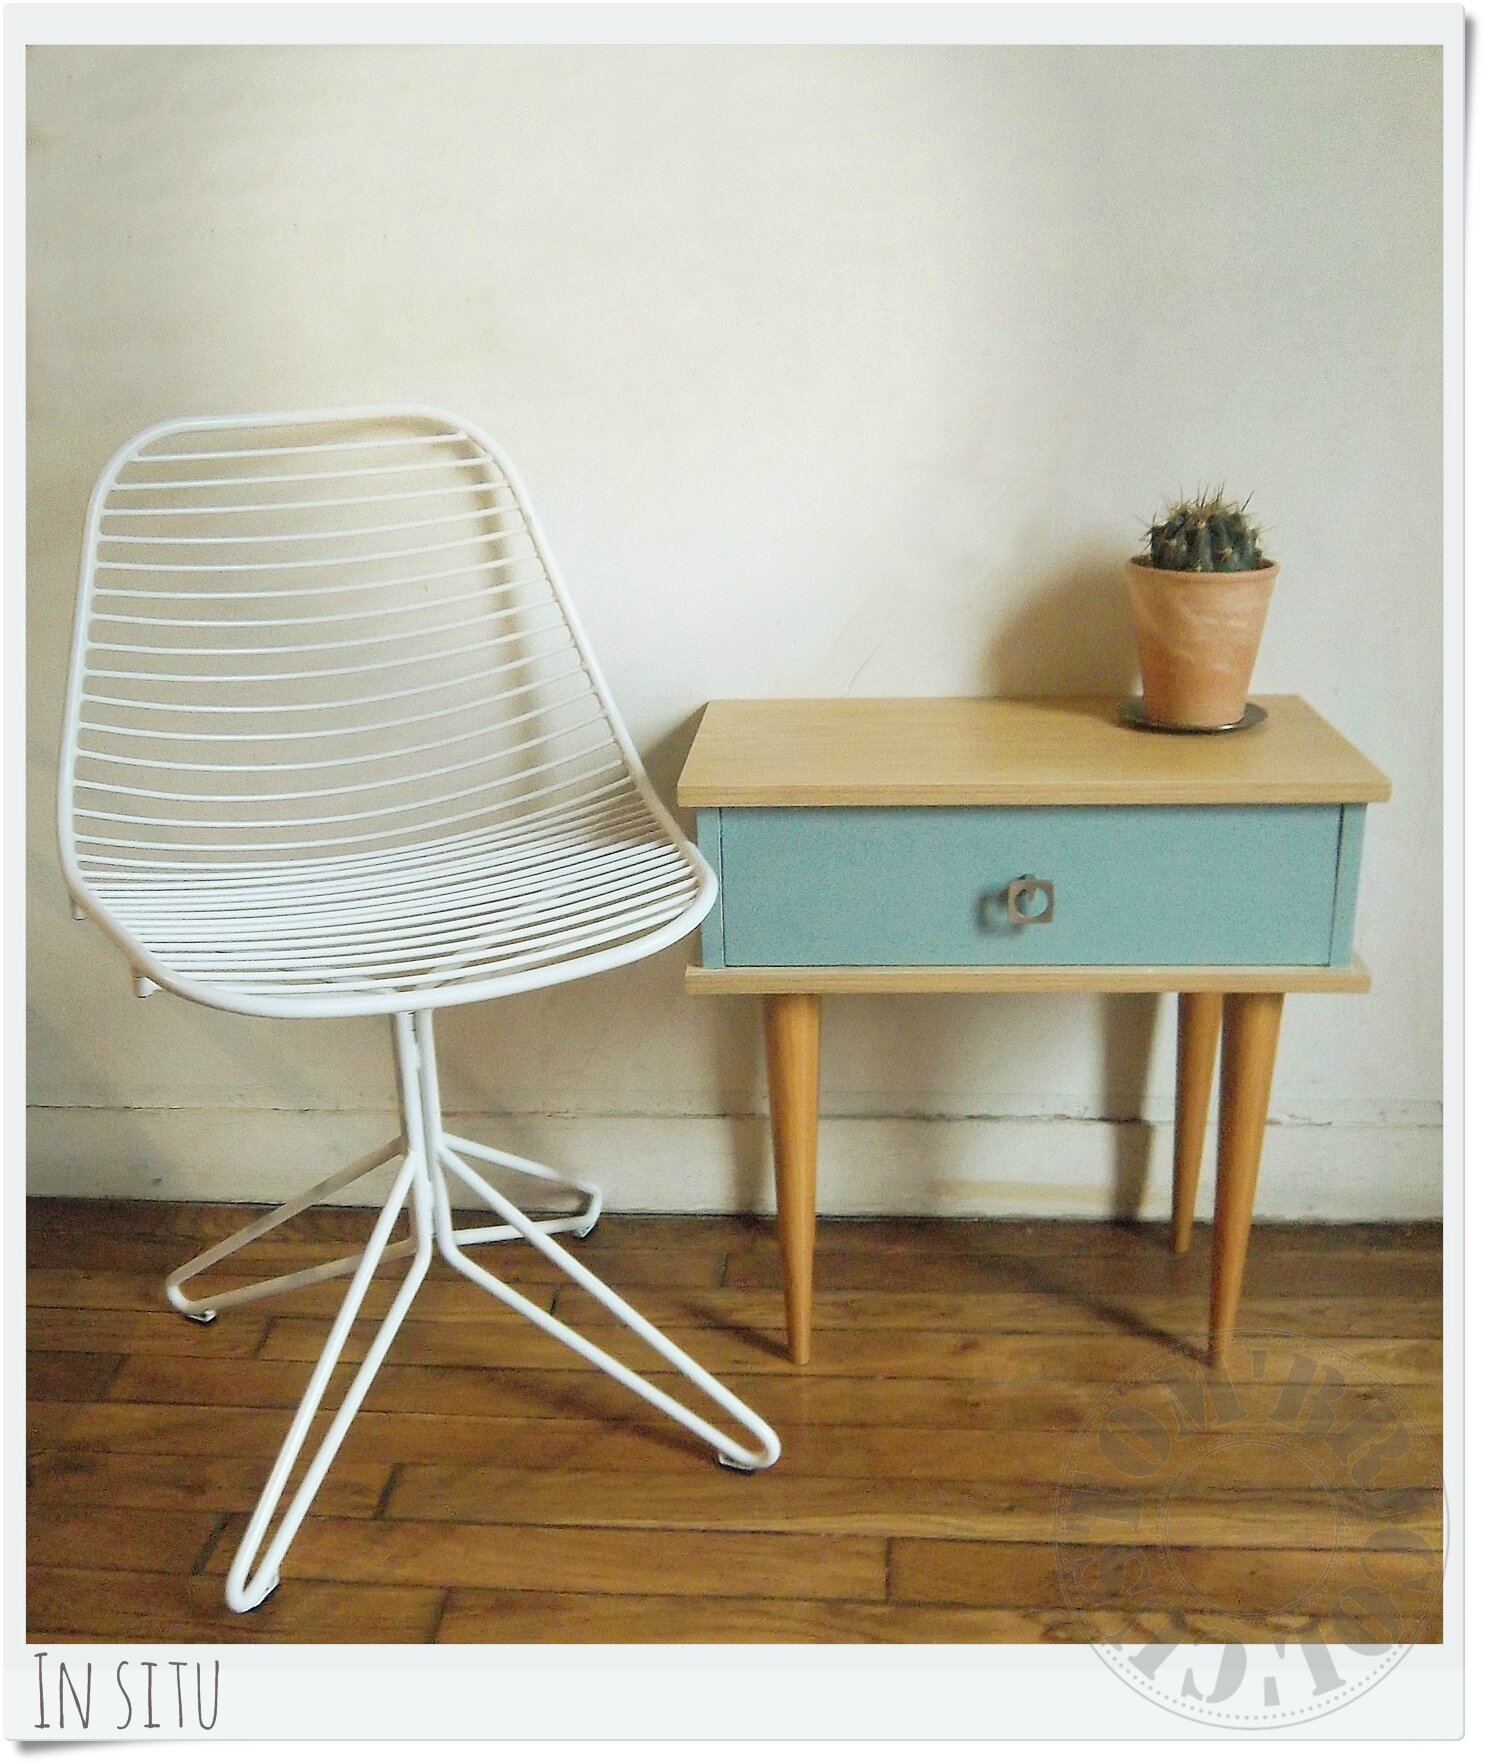 Chevet vintage bleu - in situ (2)